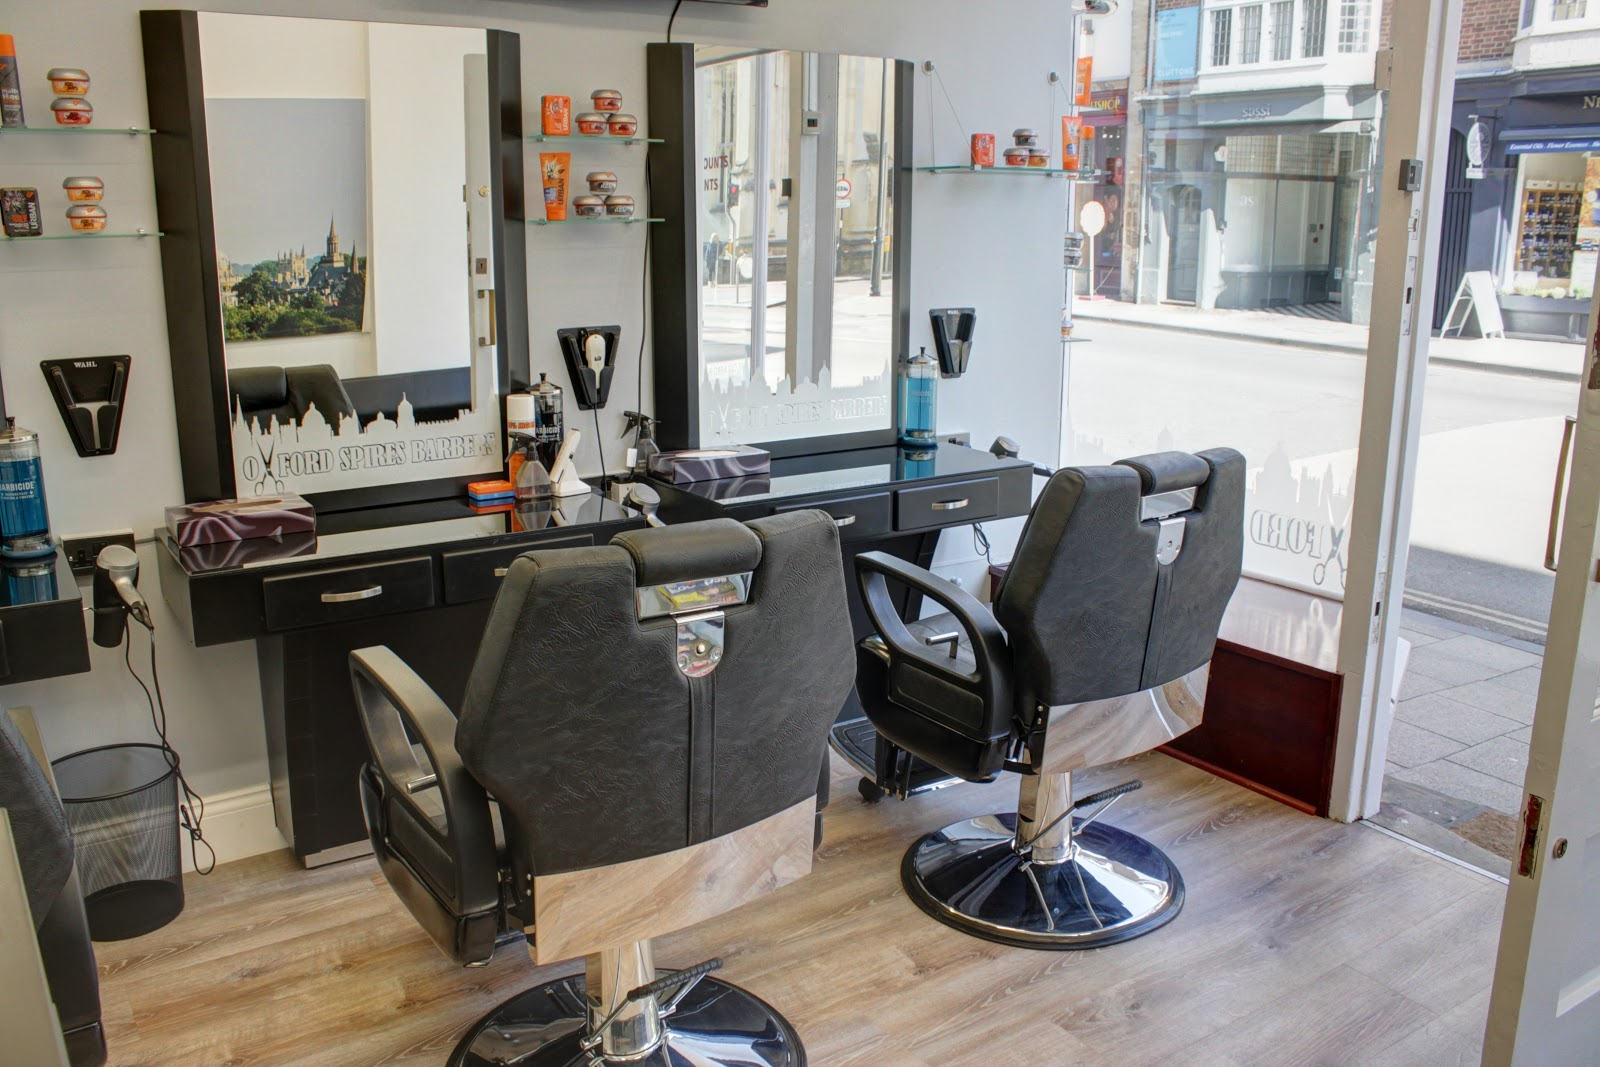 Oxford Spires Barbers